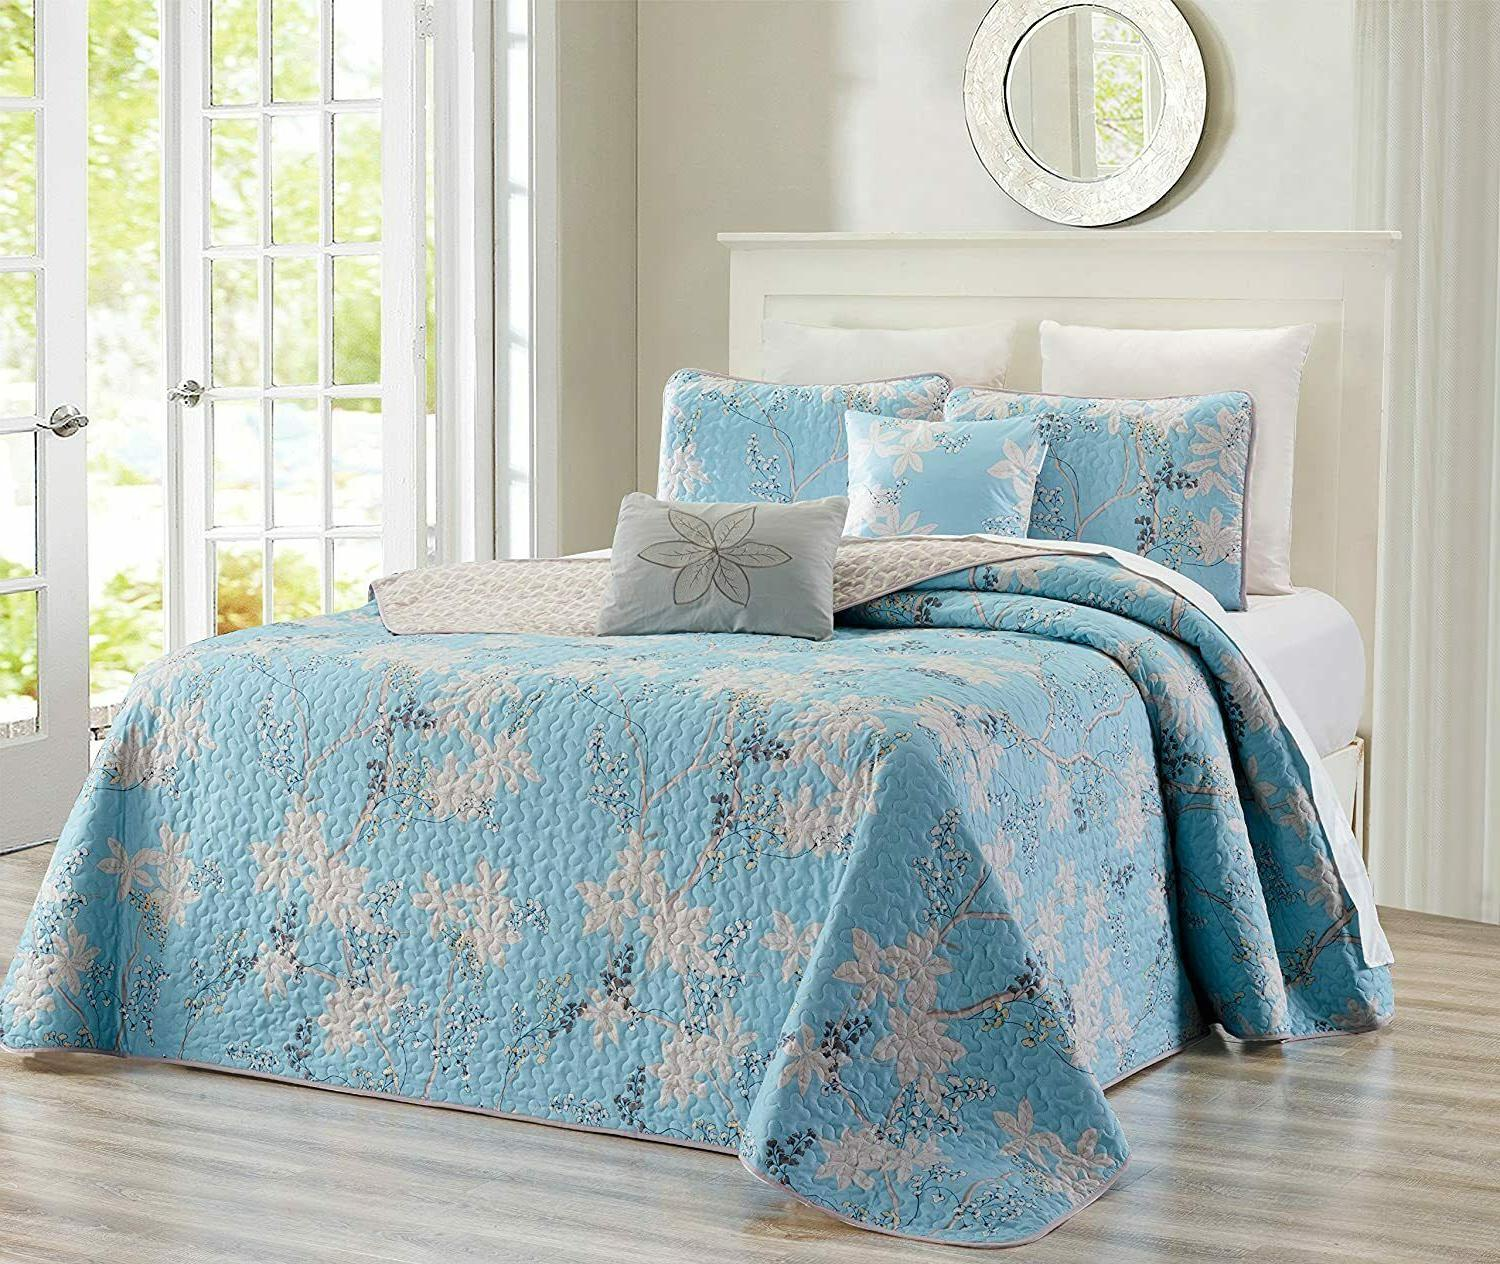 cal king 5 piece fine printed chic